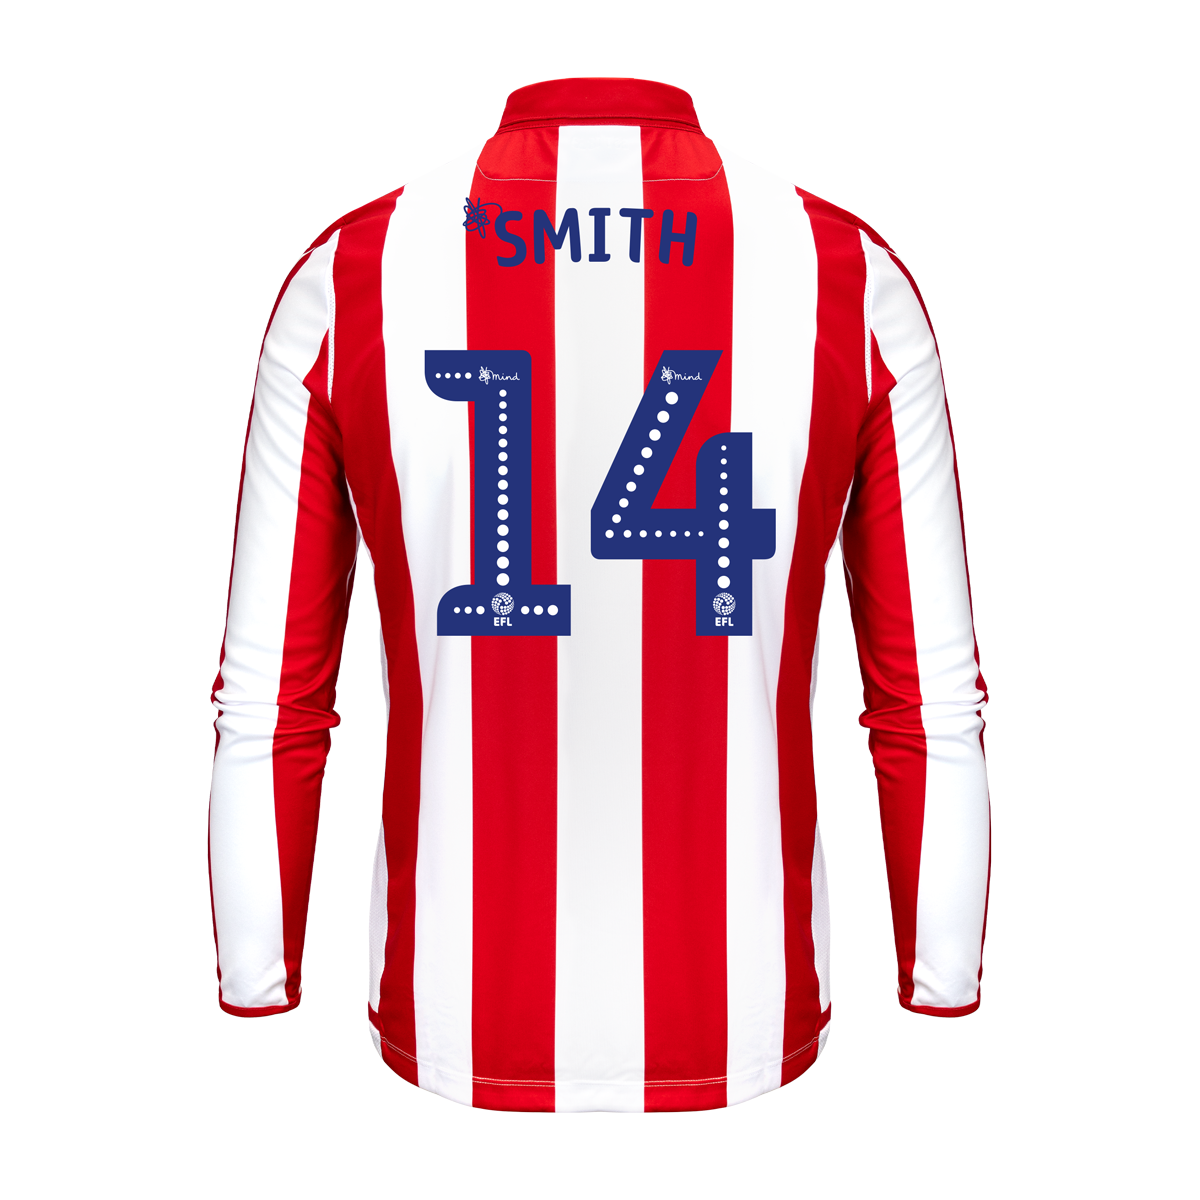 2019/20 Adult Home LS Shirt - Smith